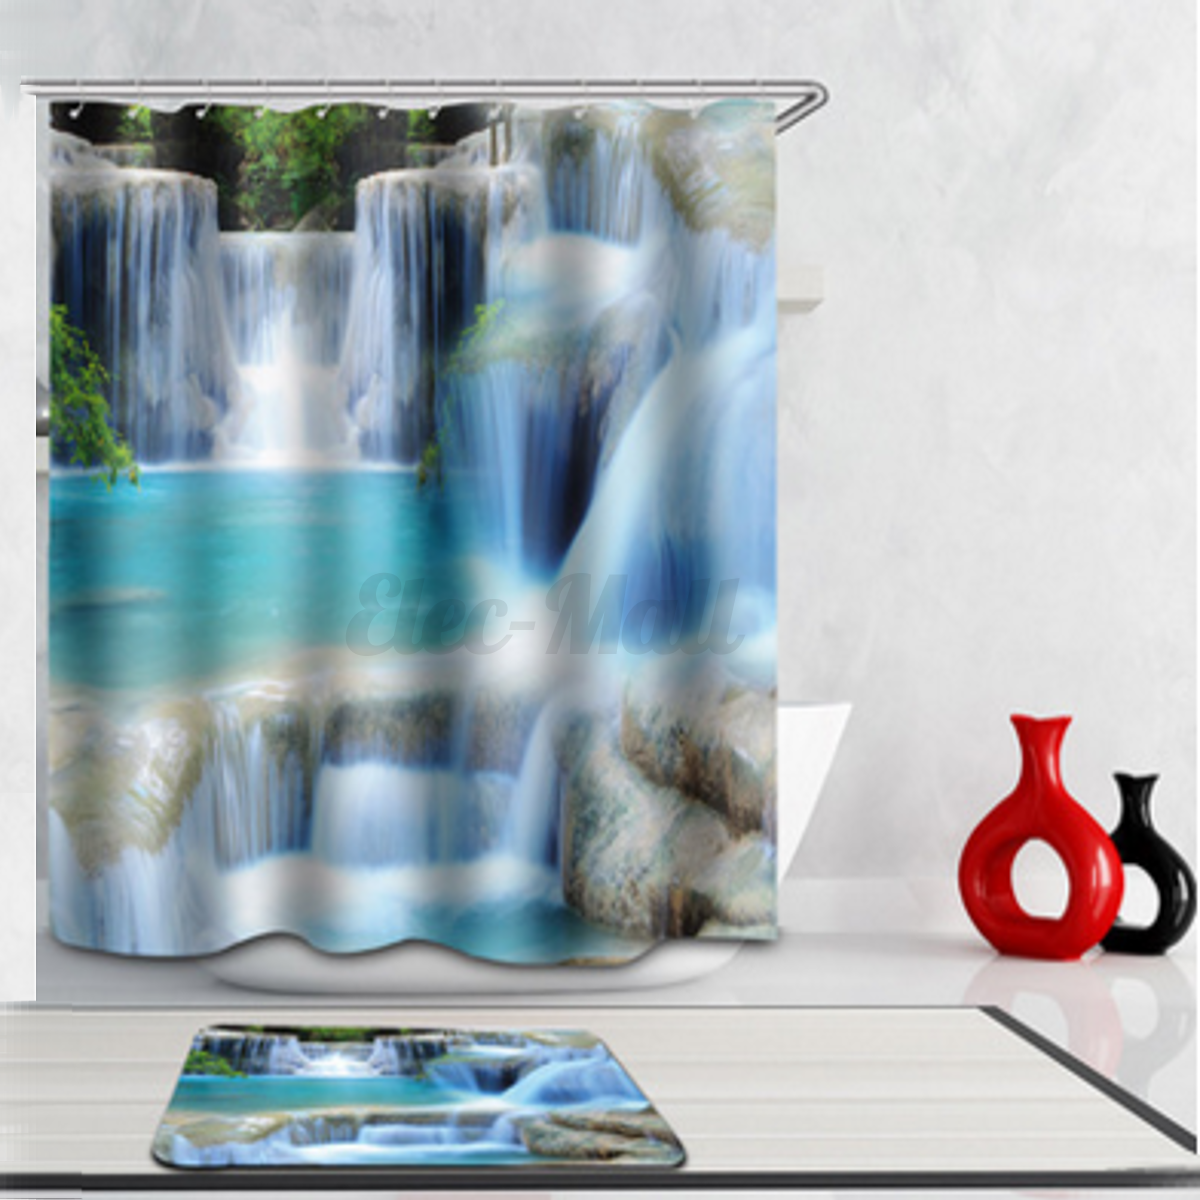 3D Shower Curtain Bathroom Waterproof Mold Prevention